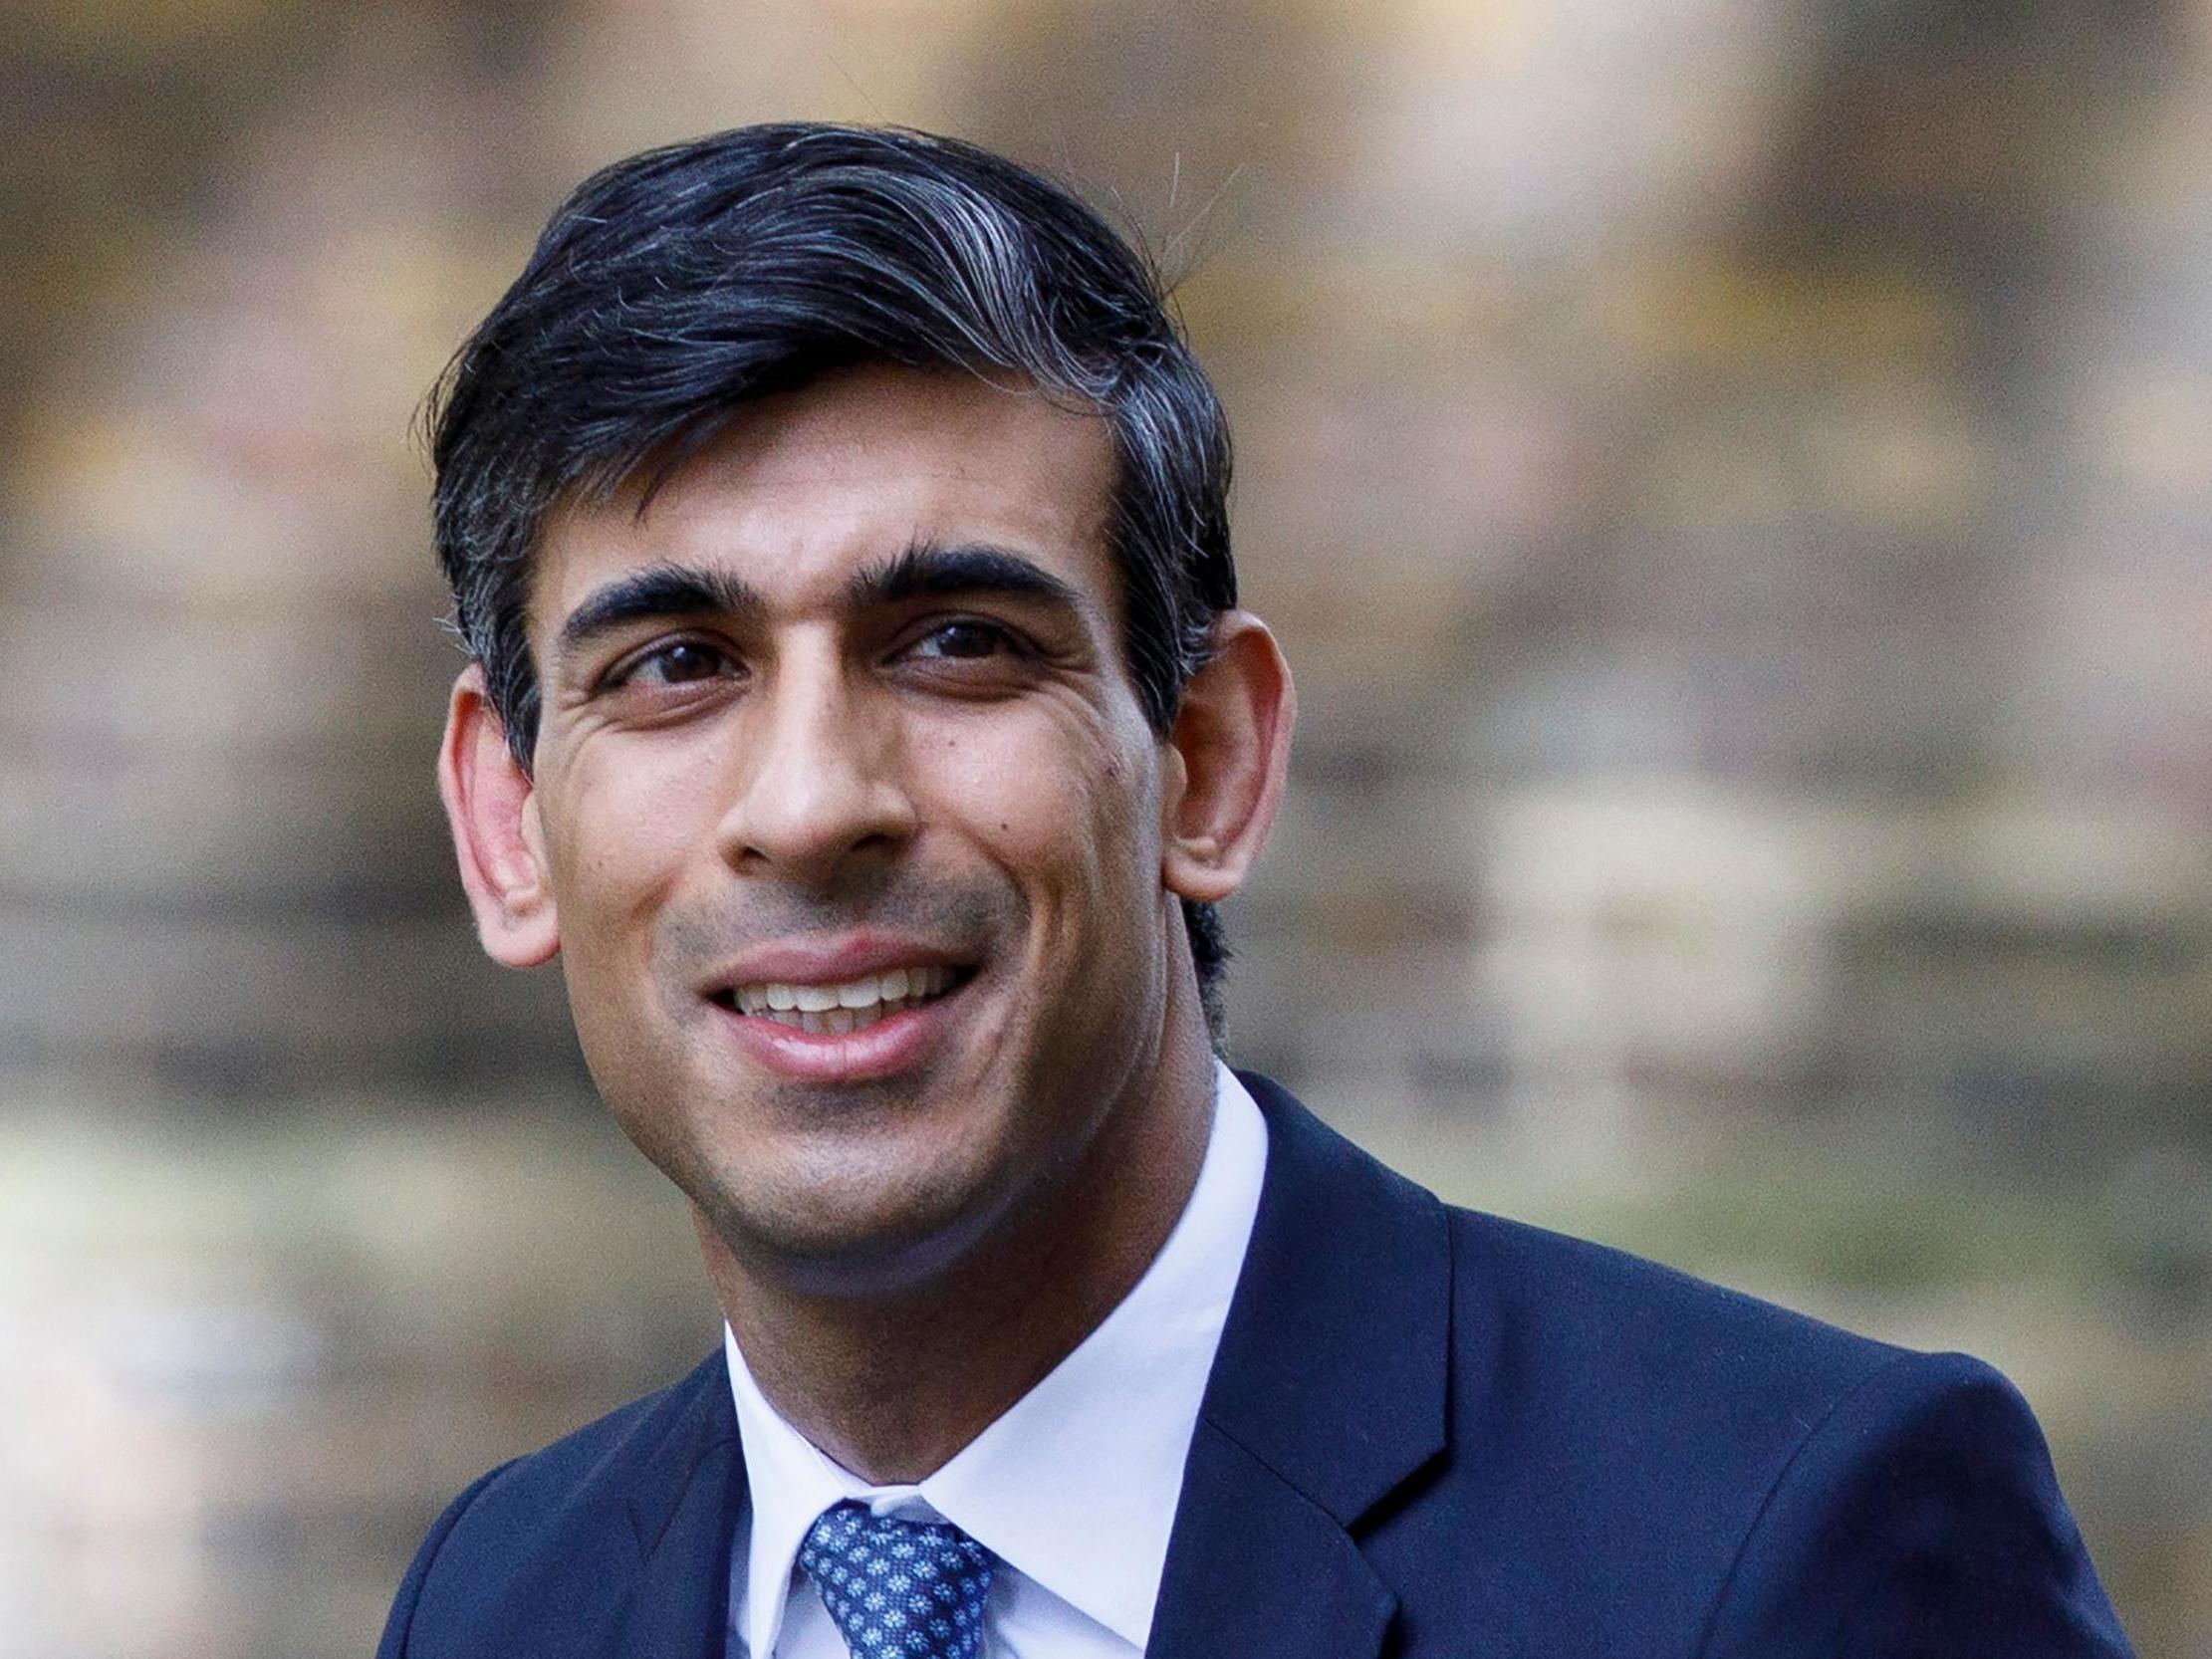 Coronavirus: Rishi Sunak must not 'pull safety net from under feet' of self employed, warn MPs - The Independent